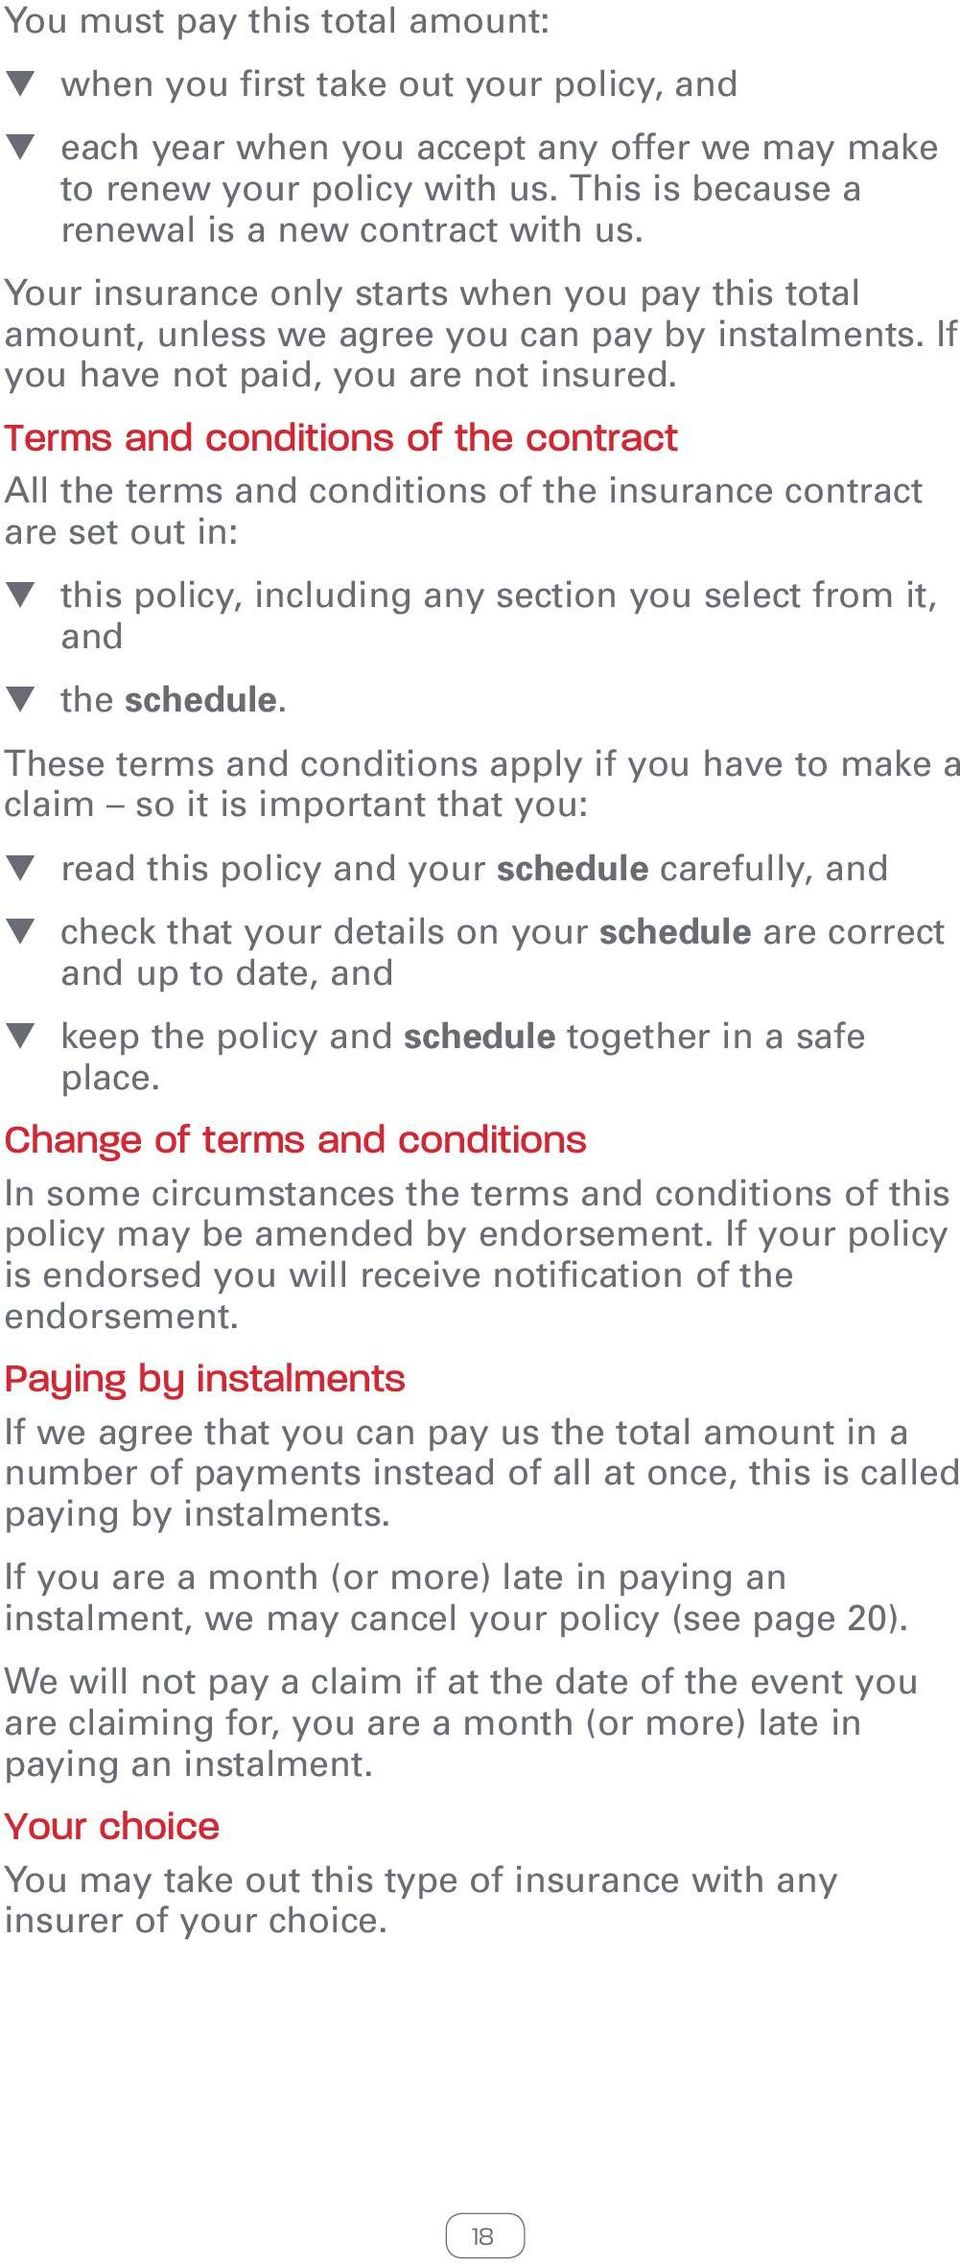 Terms and conditions of the contract All the terms and conditions of the insurance contract are set out in: this policy, including any section you select from it, and the schedule.